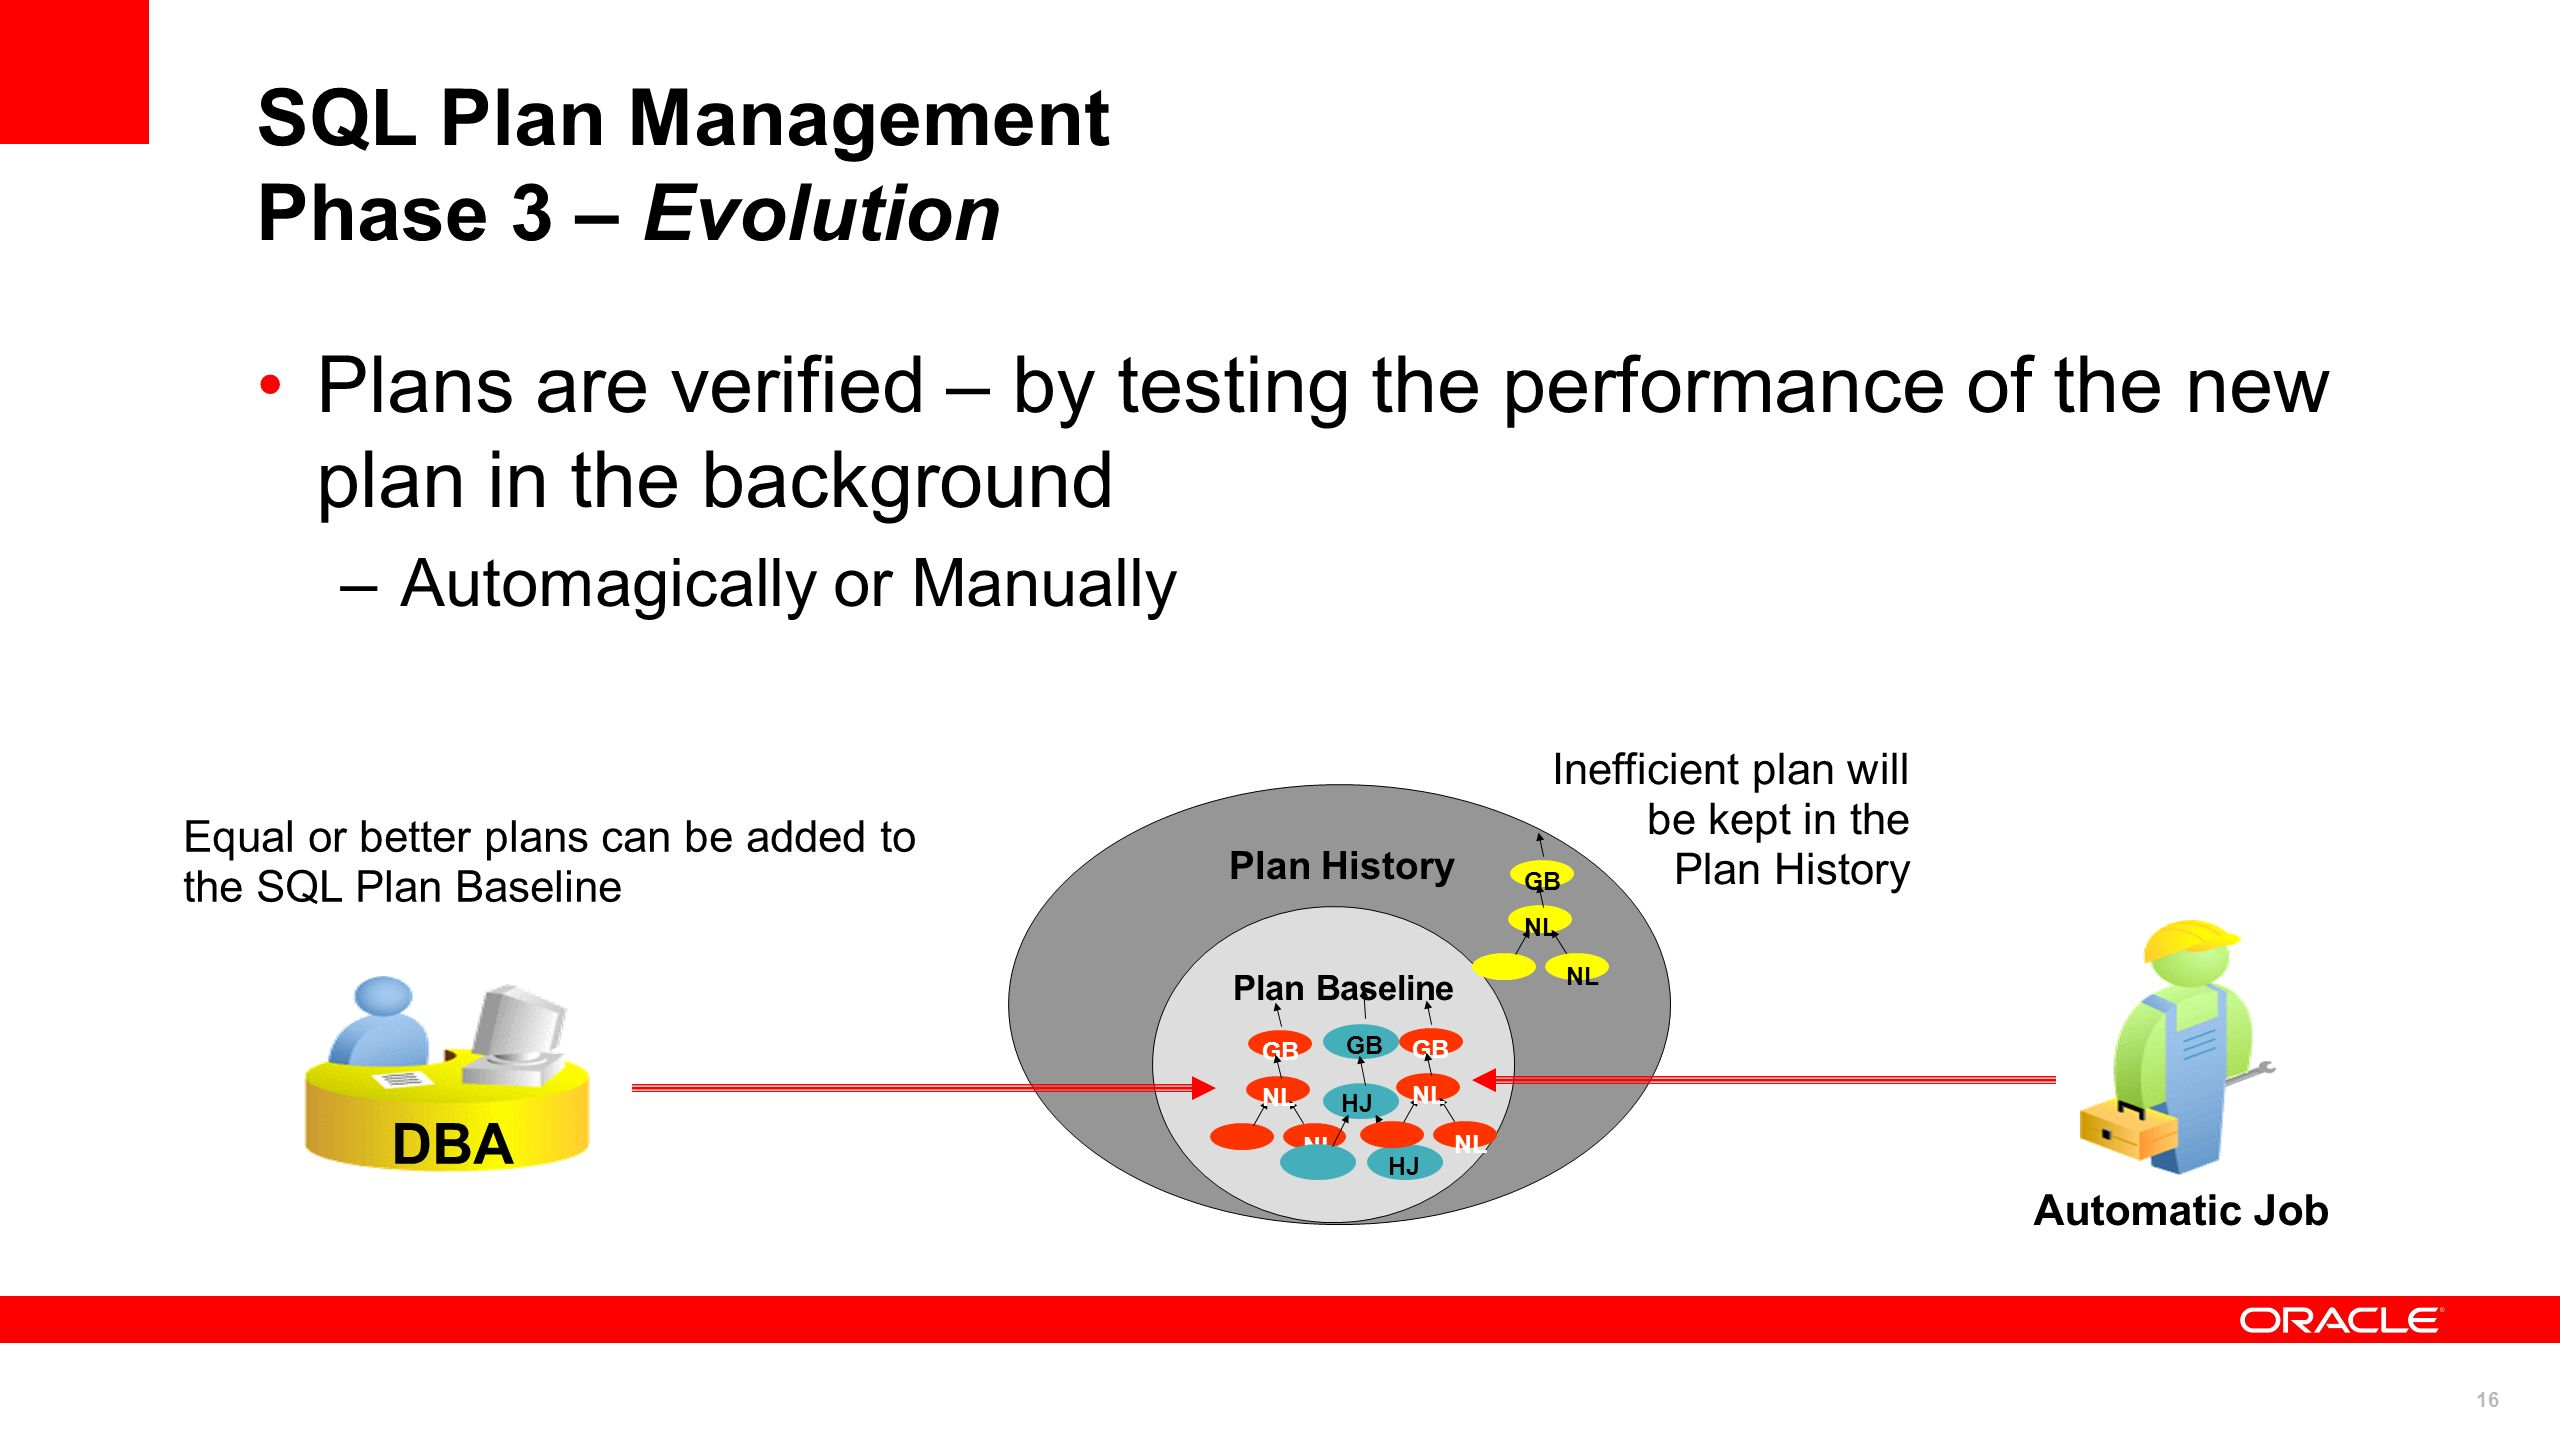 SQL Plan Management Phase 3 – Evolution